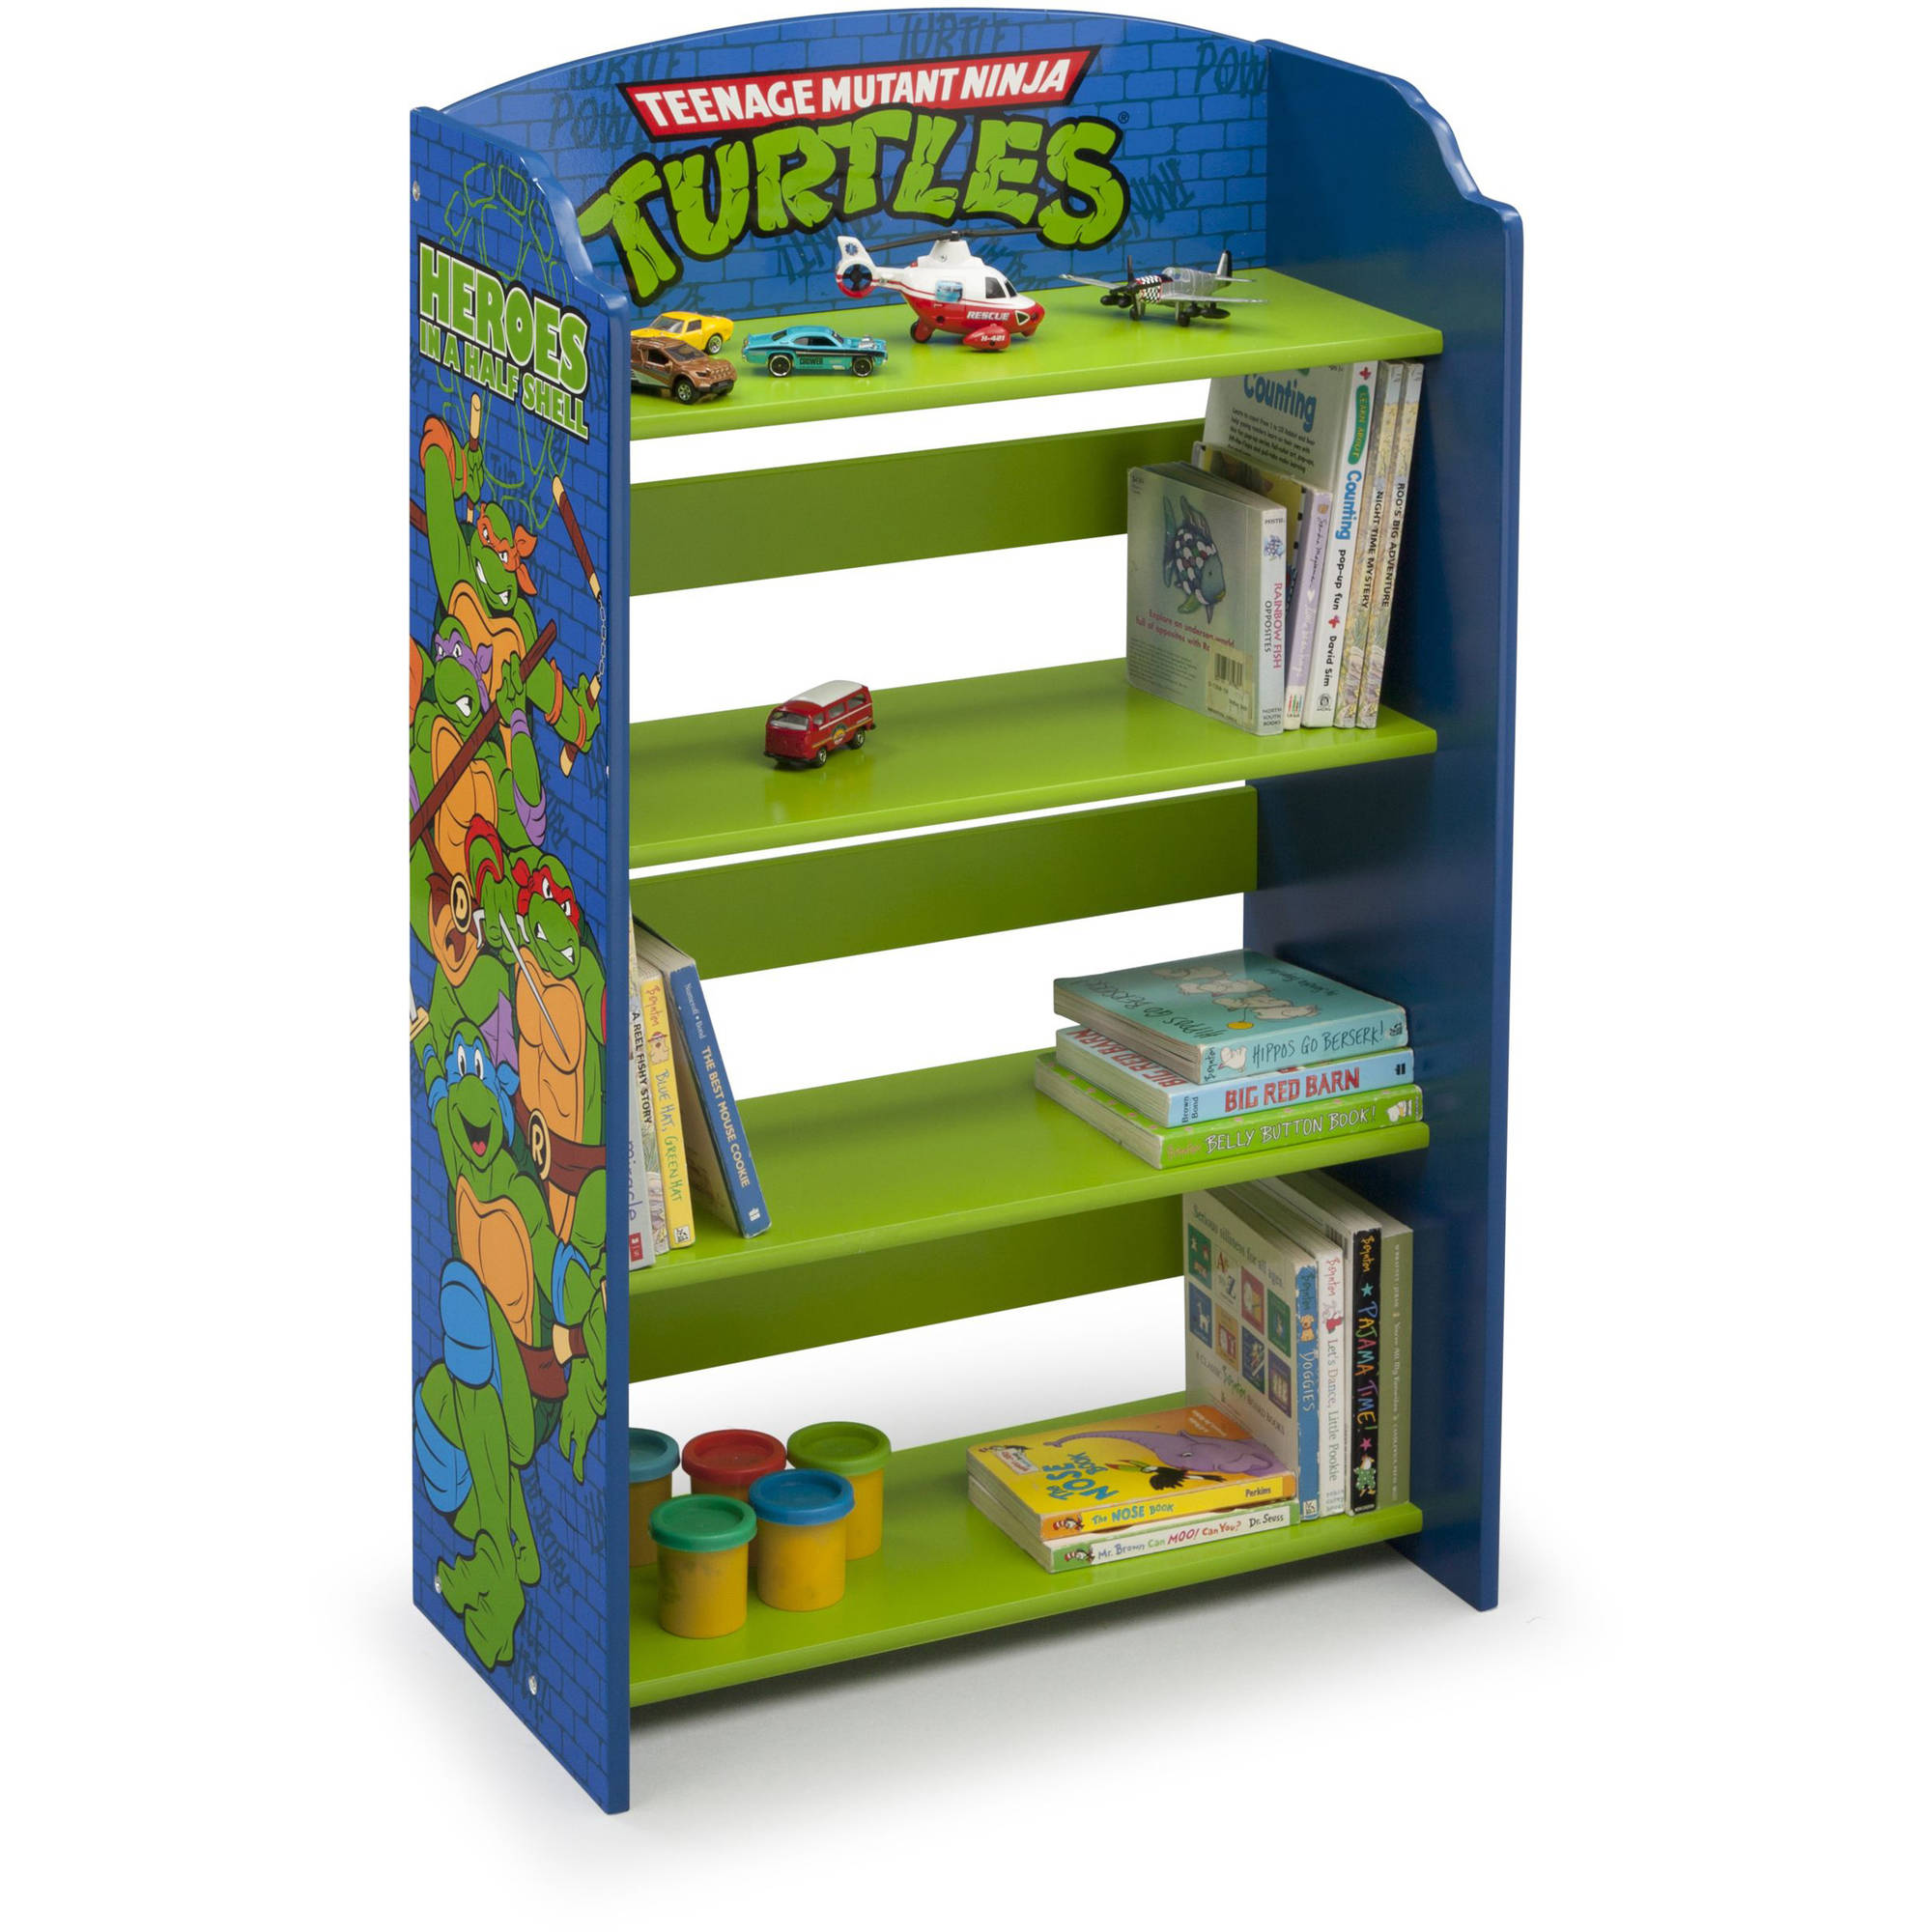 Delta Children Nickelodeon Age Mutant Ninja Turtles Bookshelf